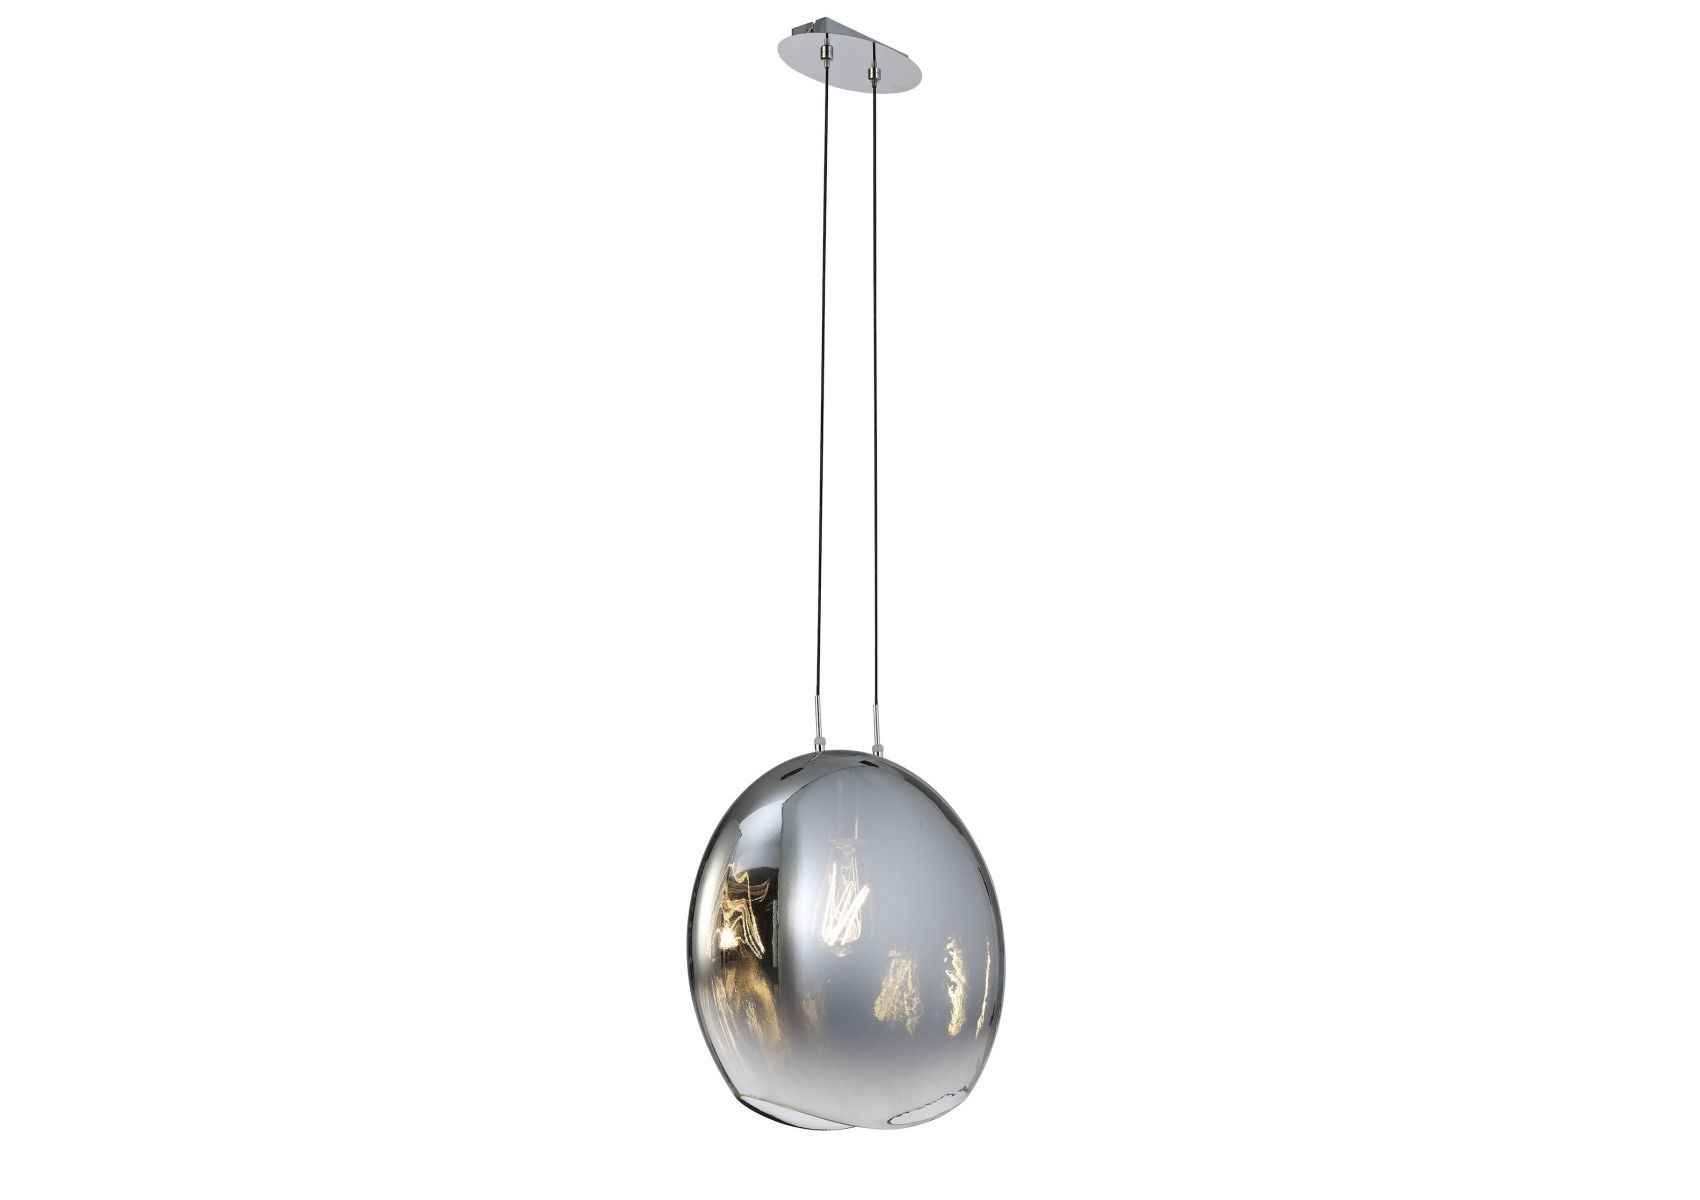 Grande Suspension Luminaire Grande Suspension En Verre Soufflé Graphite Lens Mantra